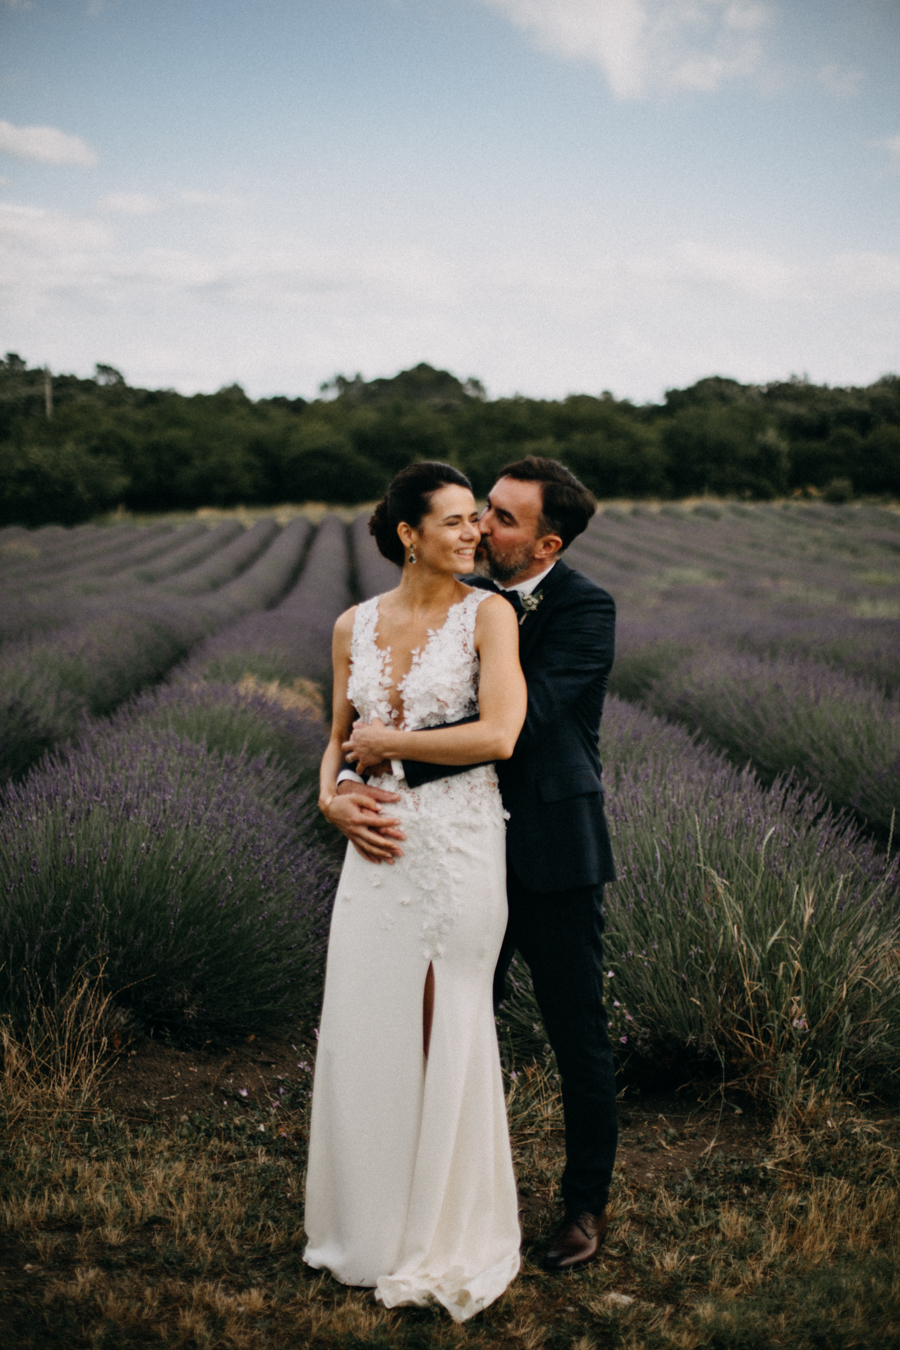 Photographe mariage seance photo wedding reportage couple love session domaine de patras provence-104